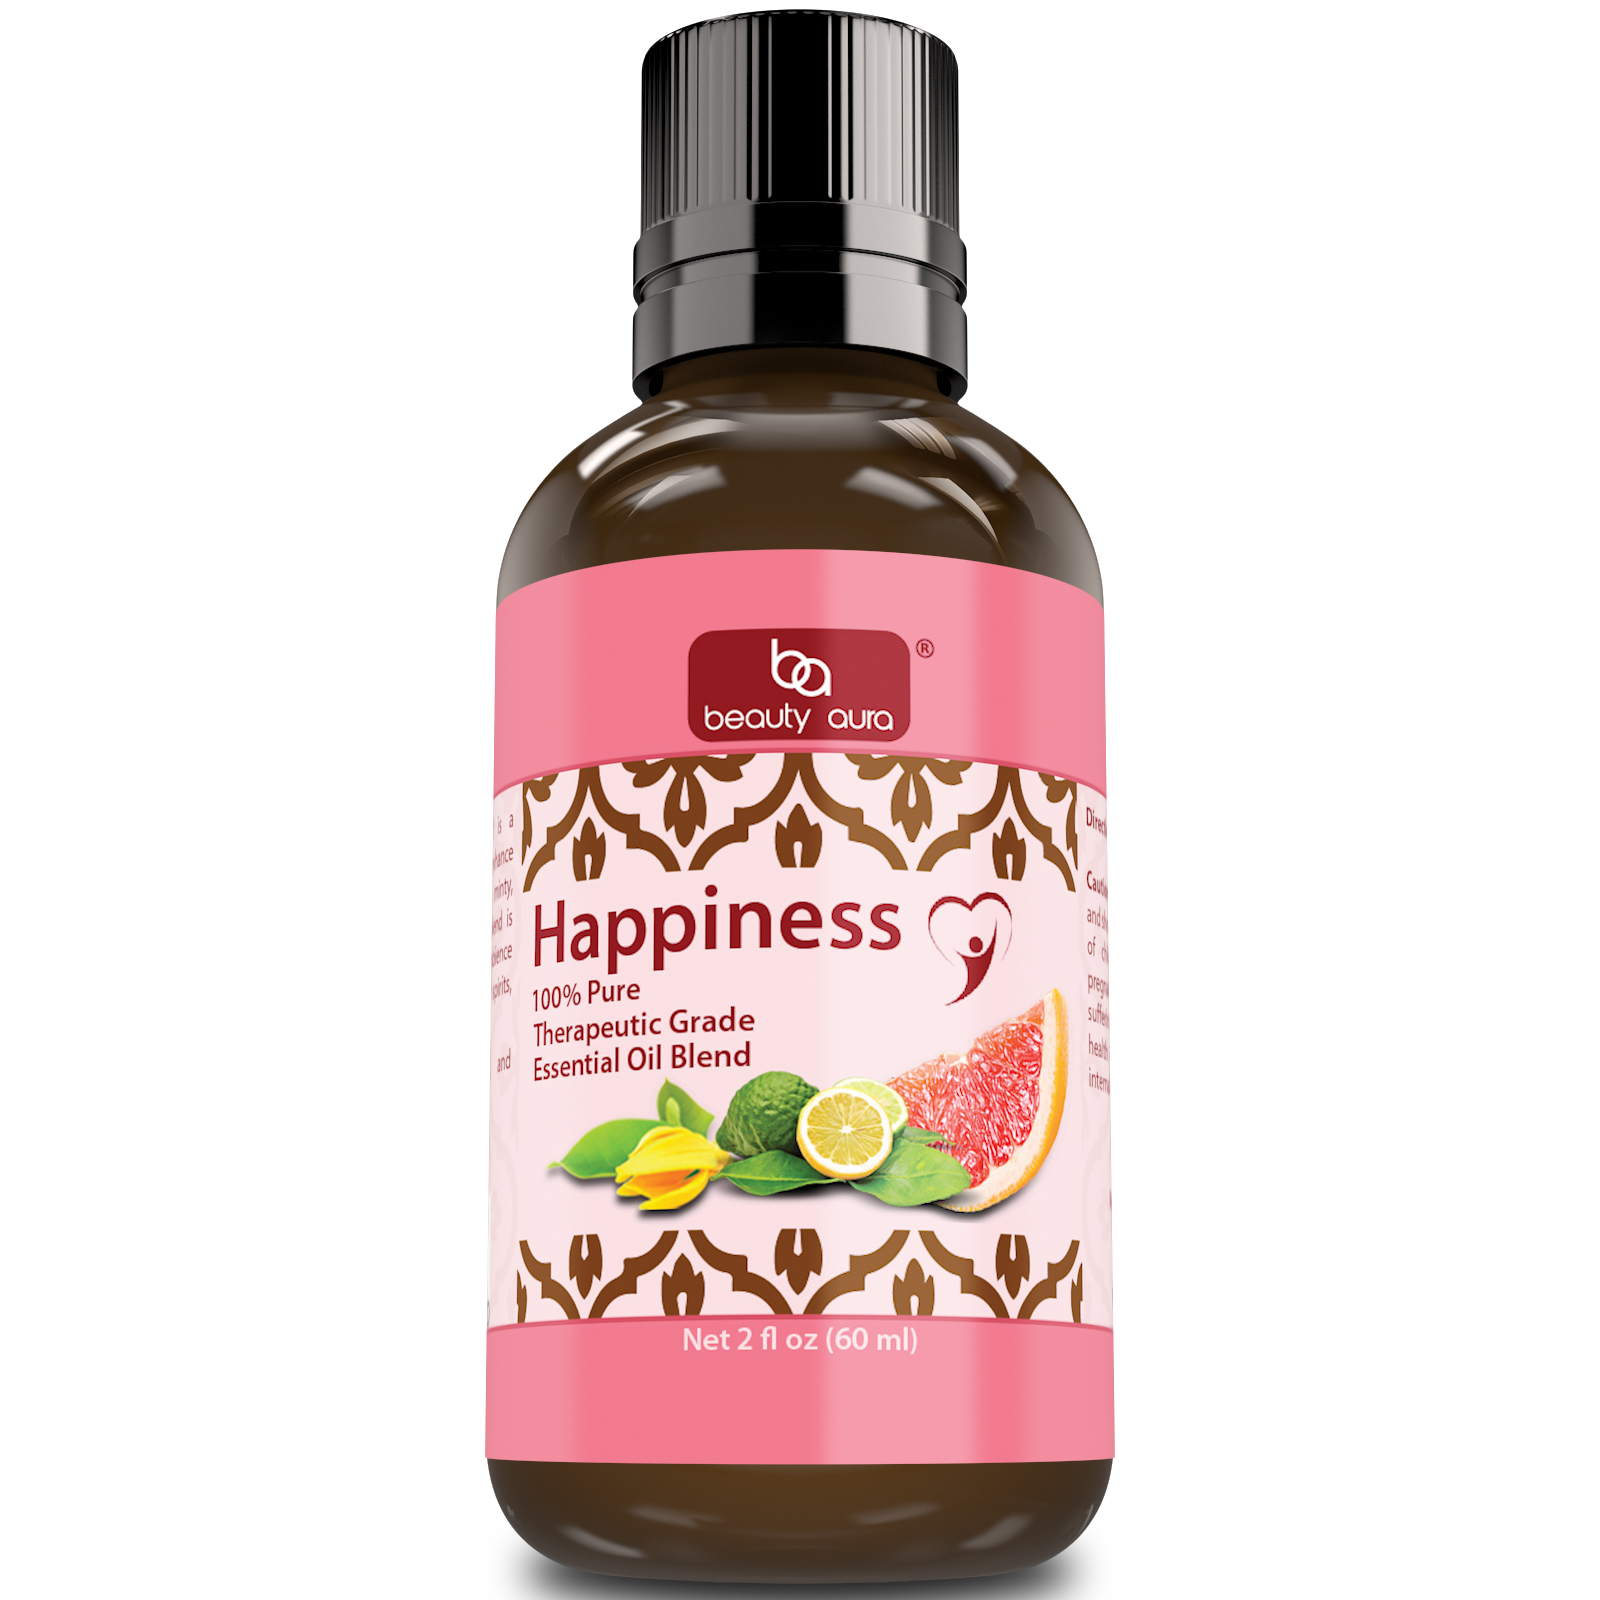 Beauty Aura Happiness Essential Oil Blend (2 Oz.)